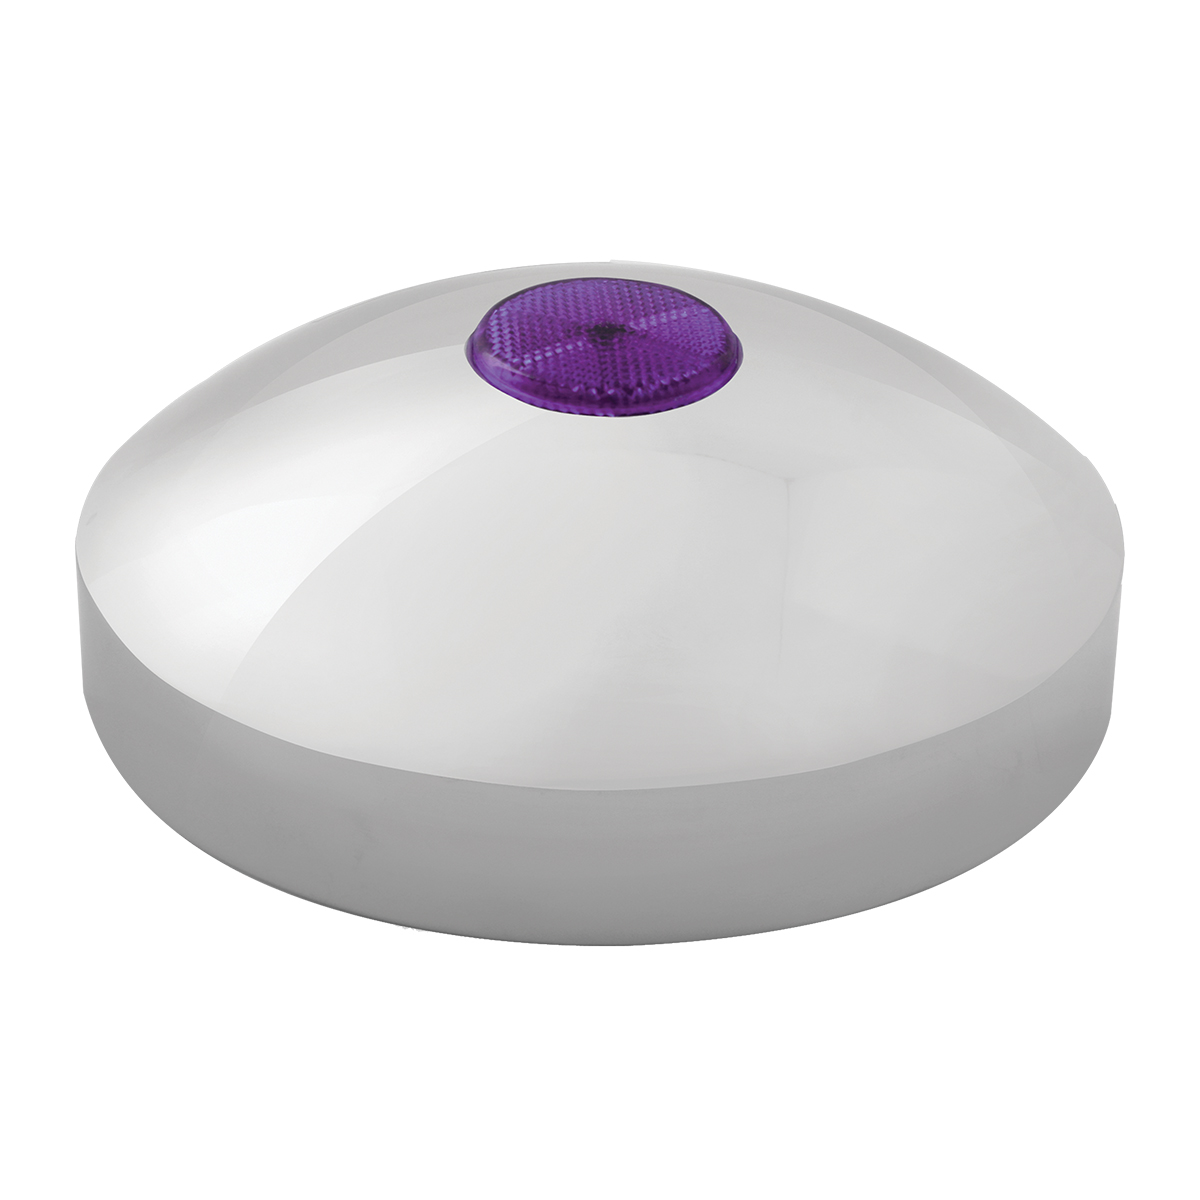 "7 ¼"" Rear Hub Cap with 2"" Top Mounted Purple Reflector"